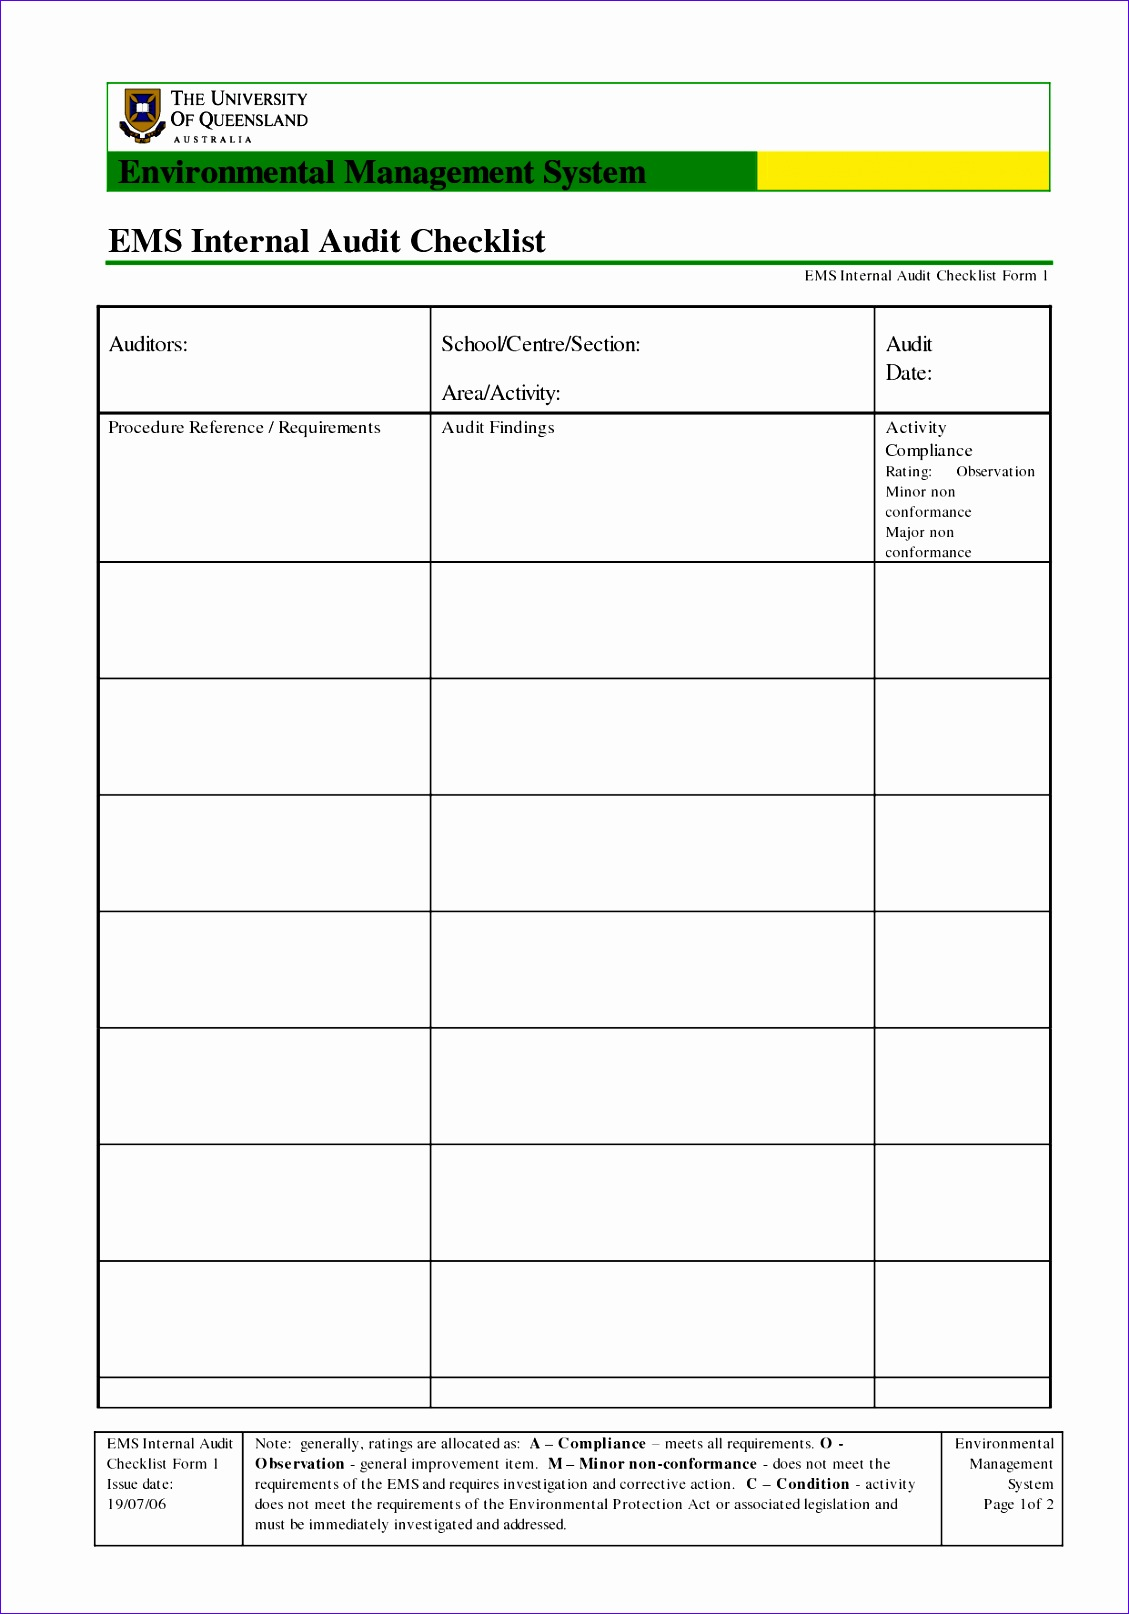 uncategorized best ems internal audit checklist form template with table for auditors and school and area